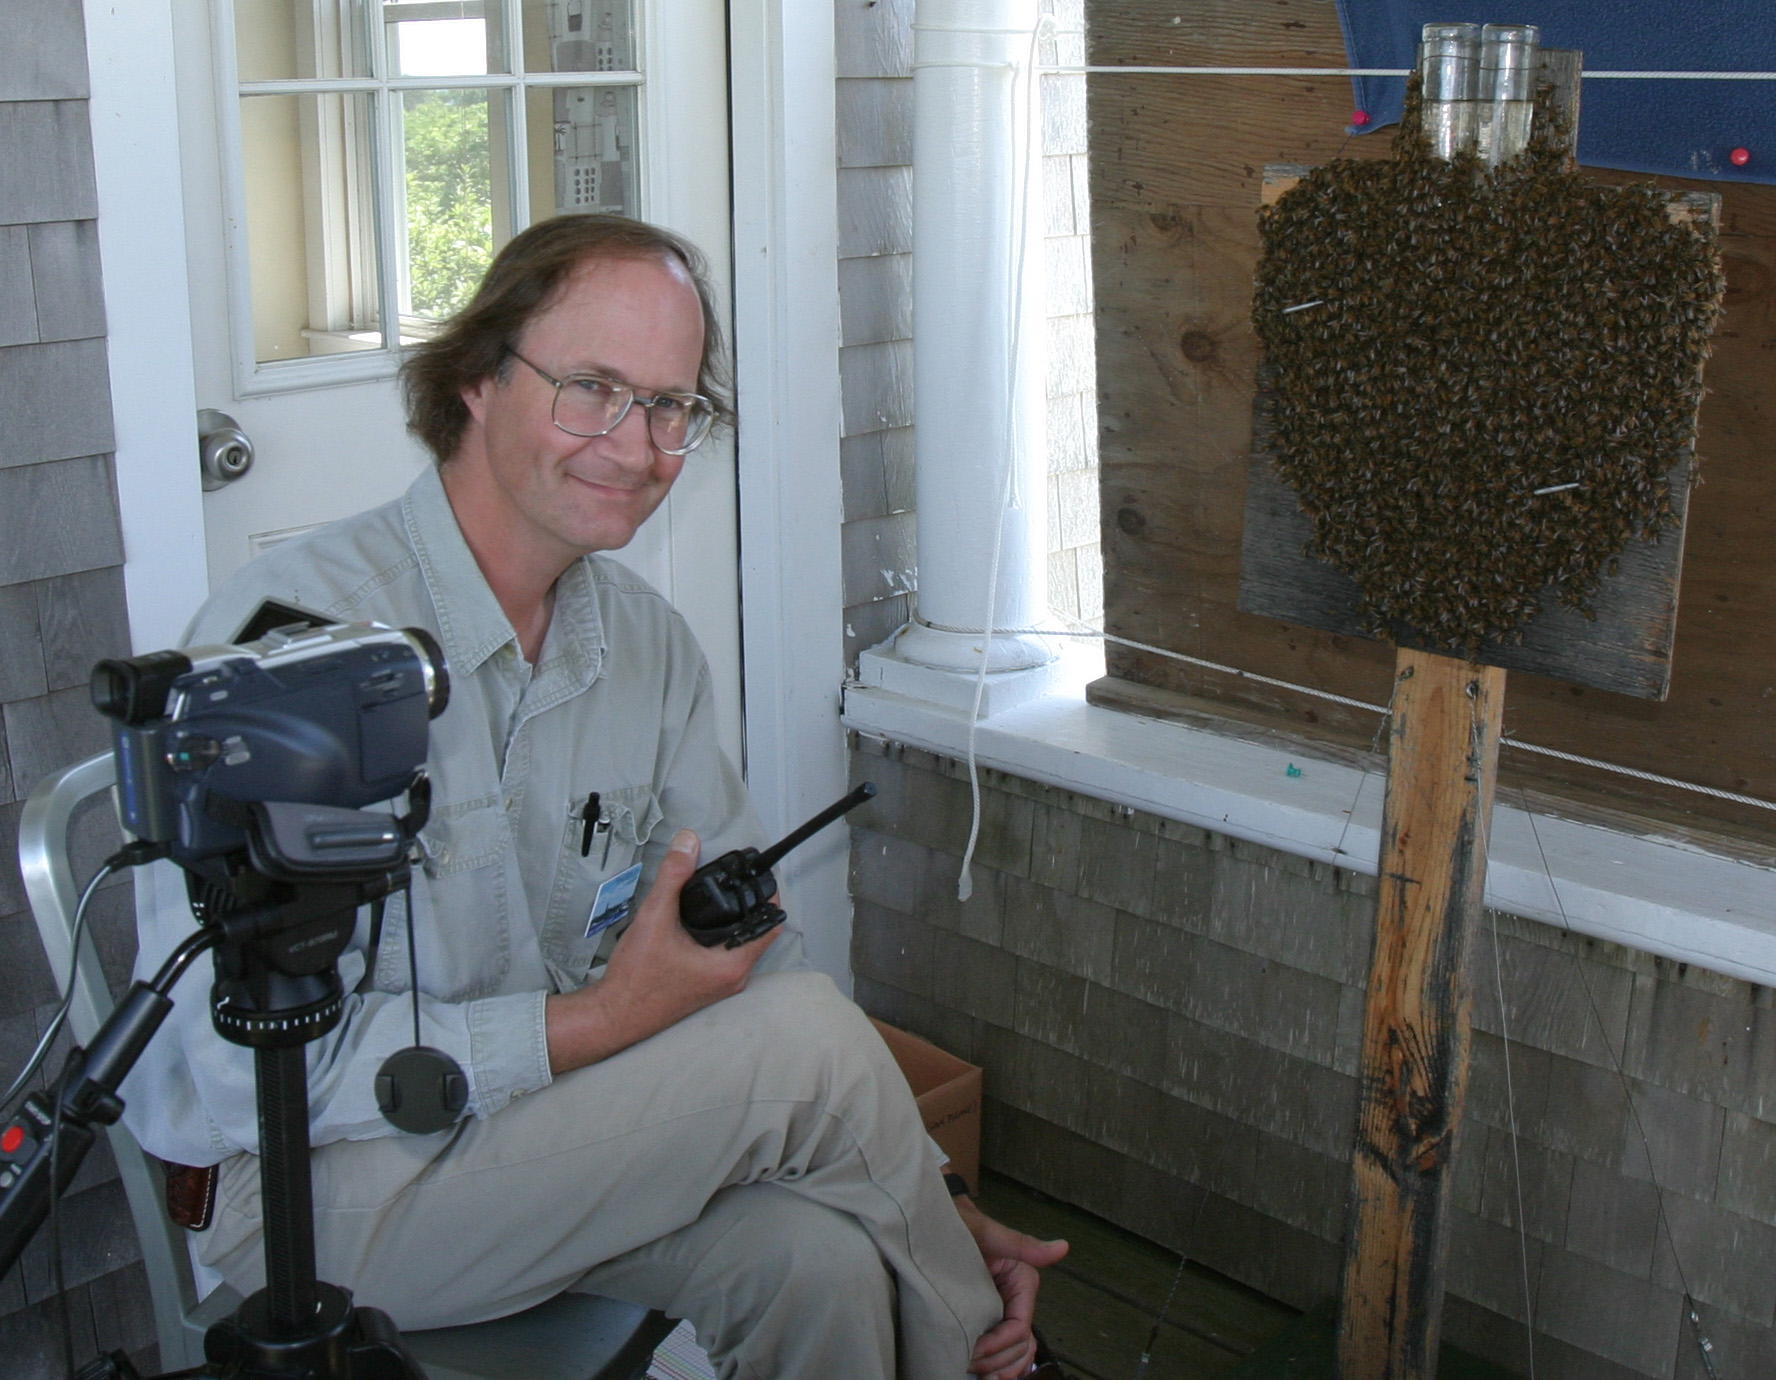 Tom Seeley with swarm